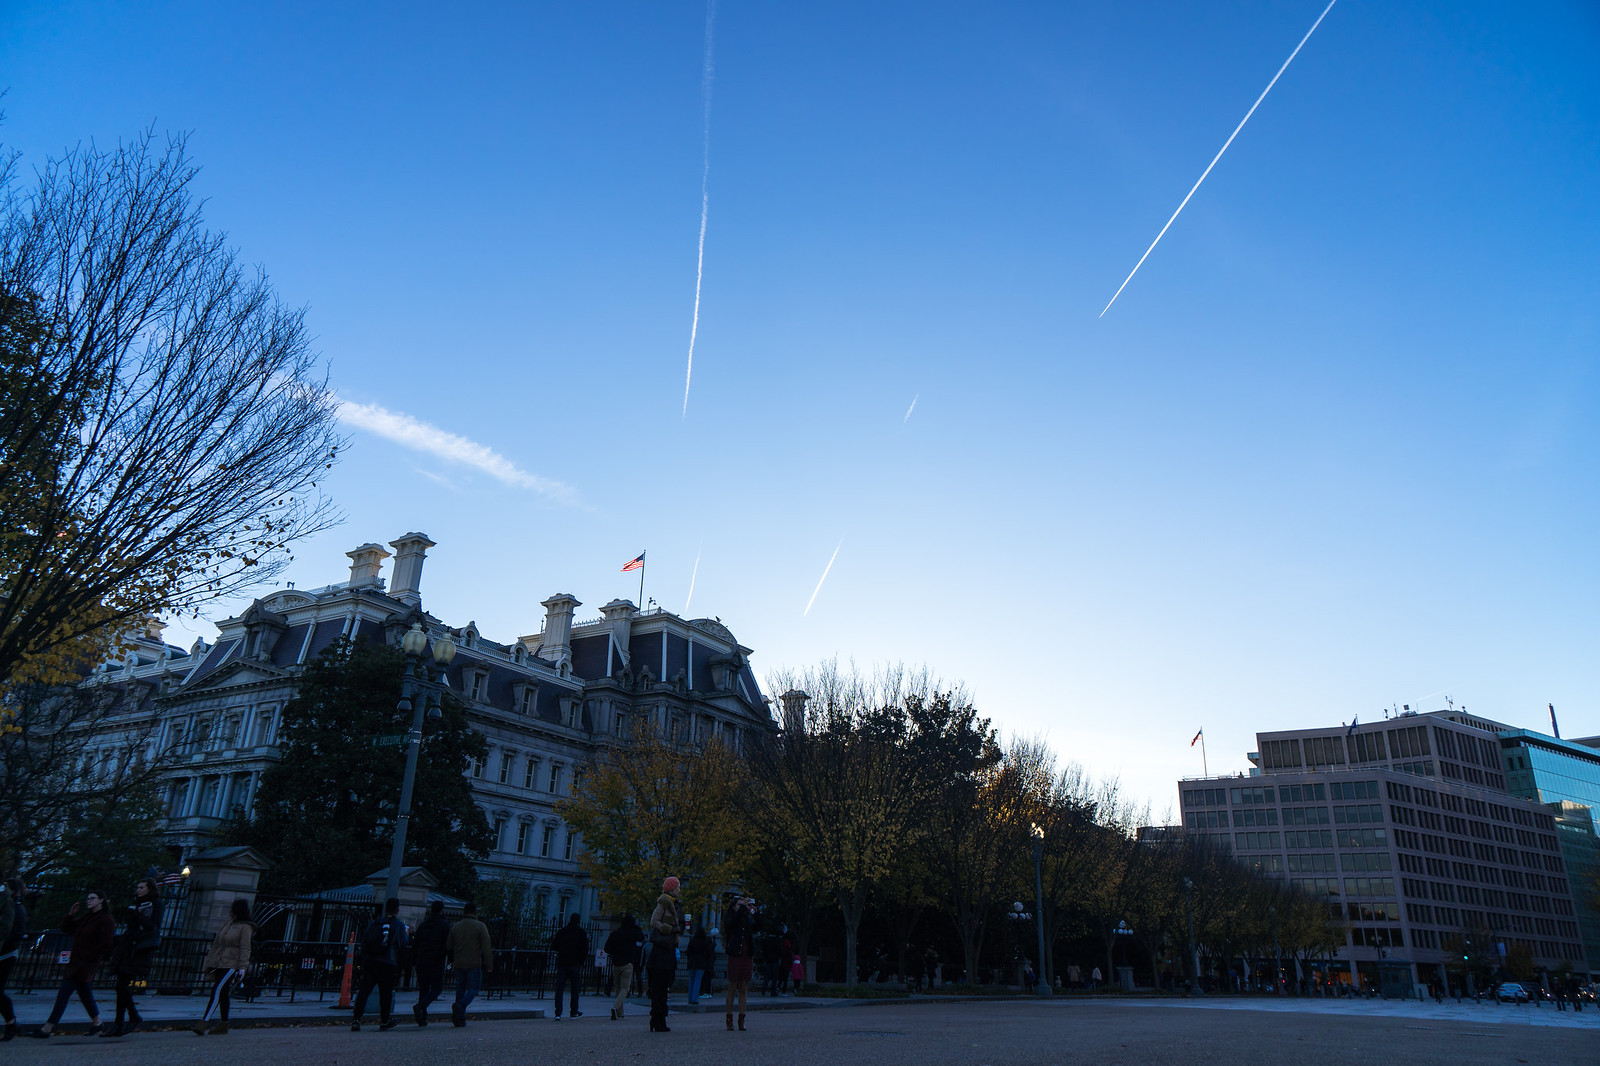 20171110_WashingtonDC_16